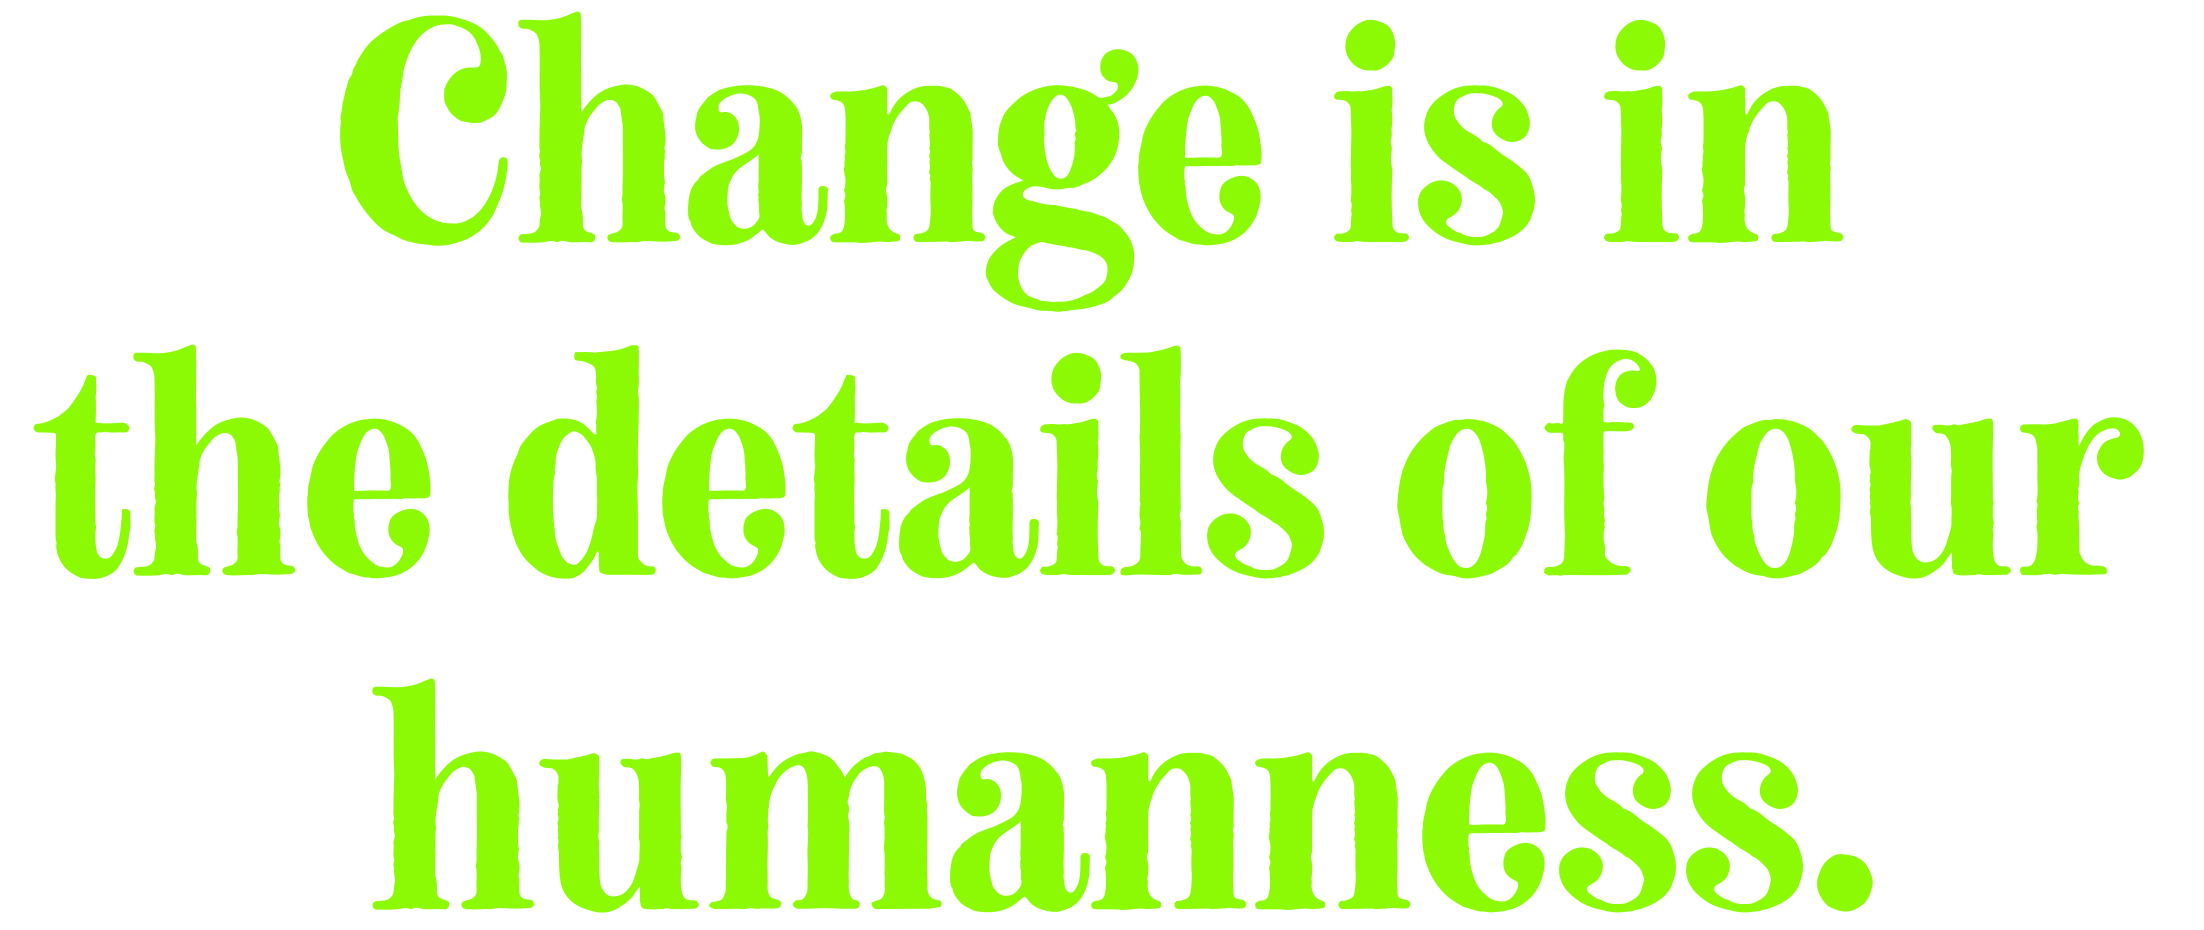 Change is in the details of our humanness.